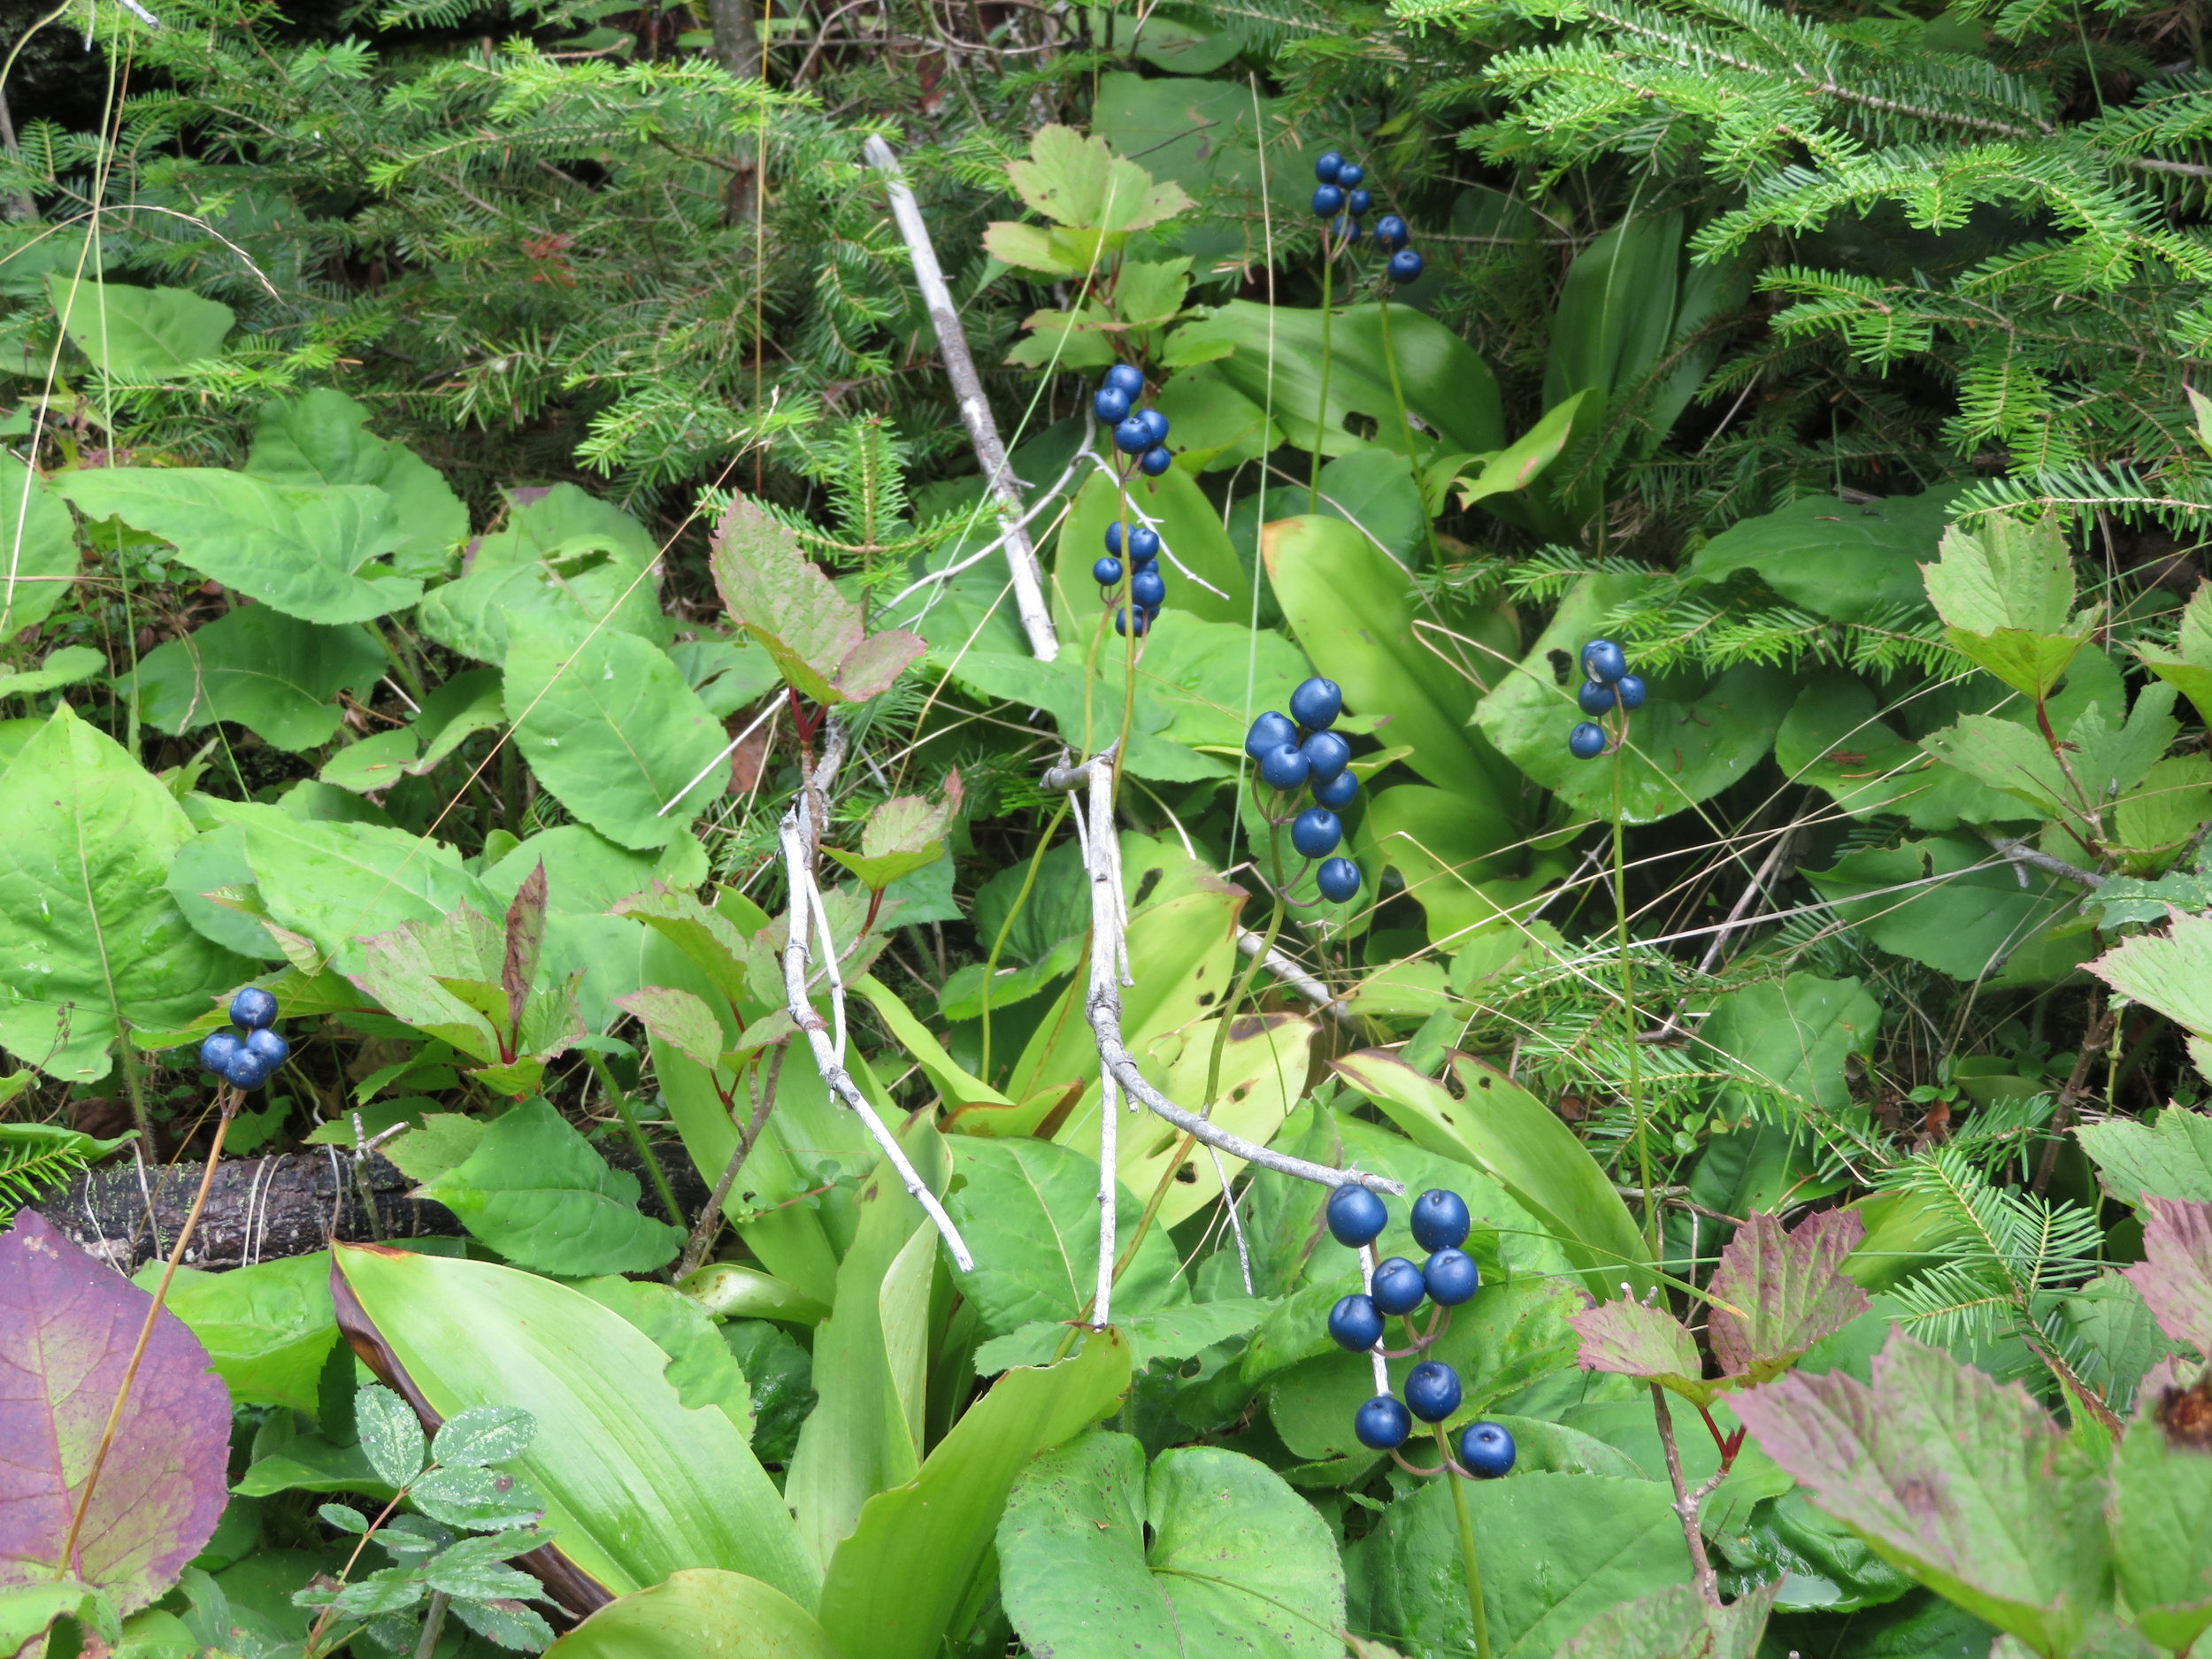 Blueberry bushes that were perfect for a hiker's treat as you went along the trails